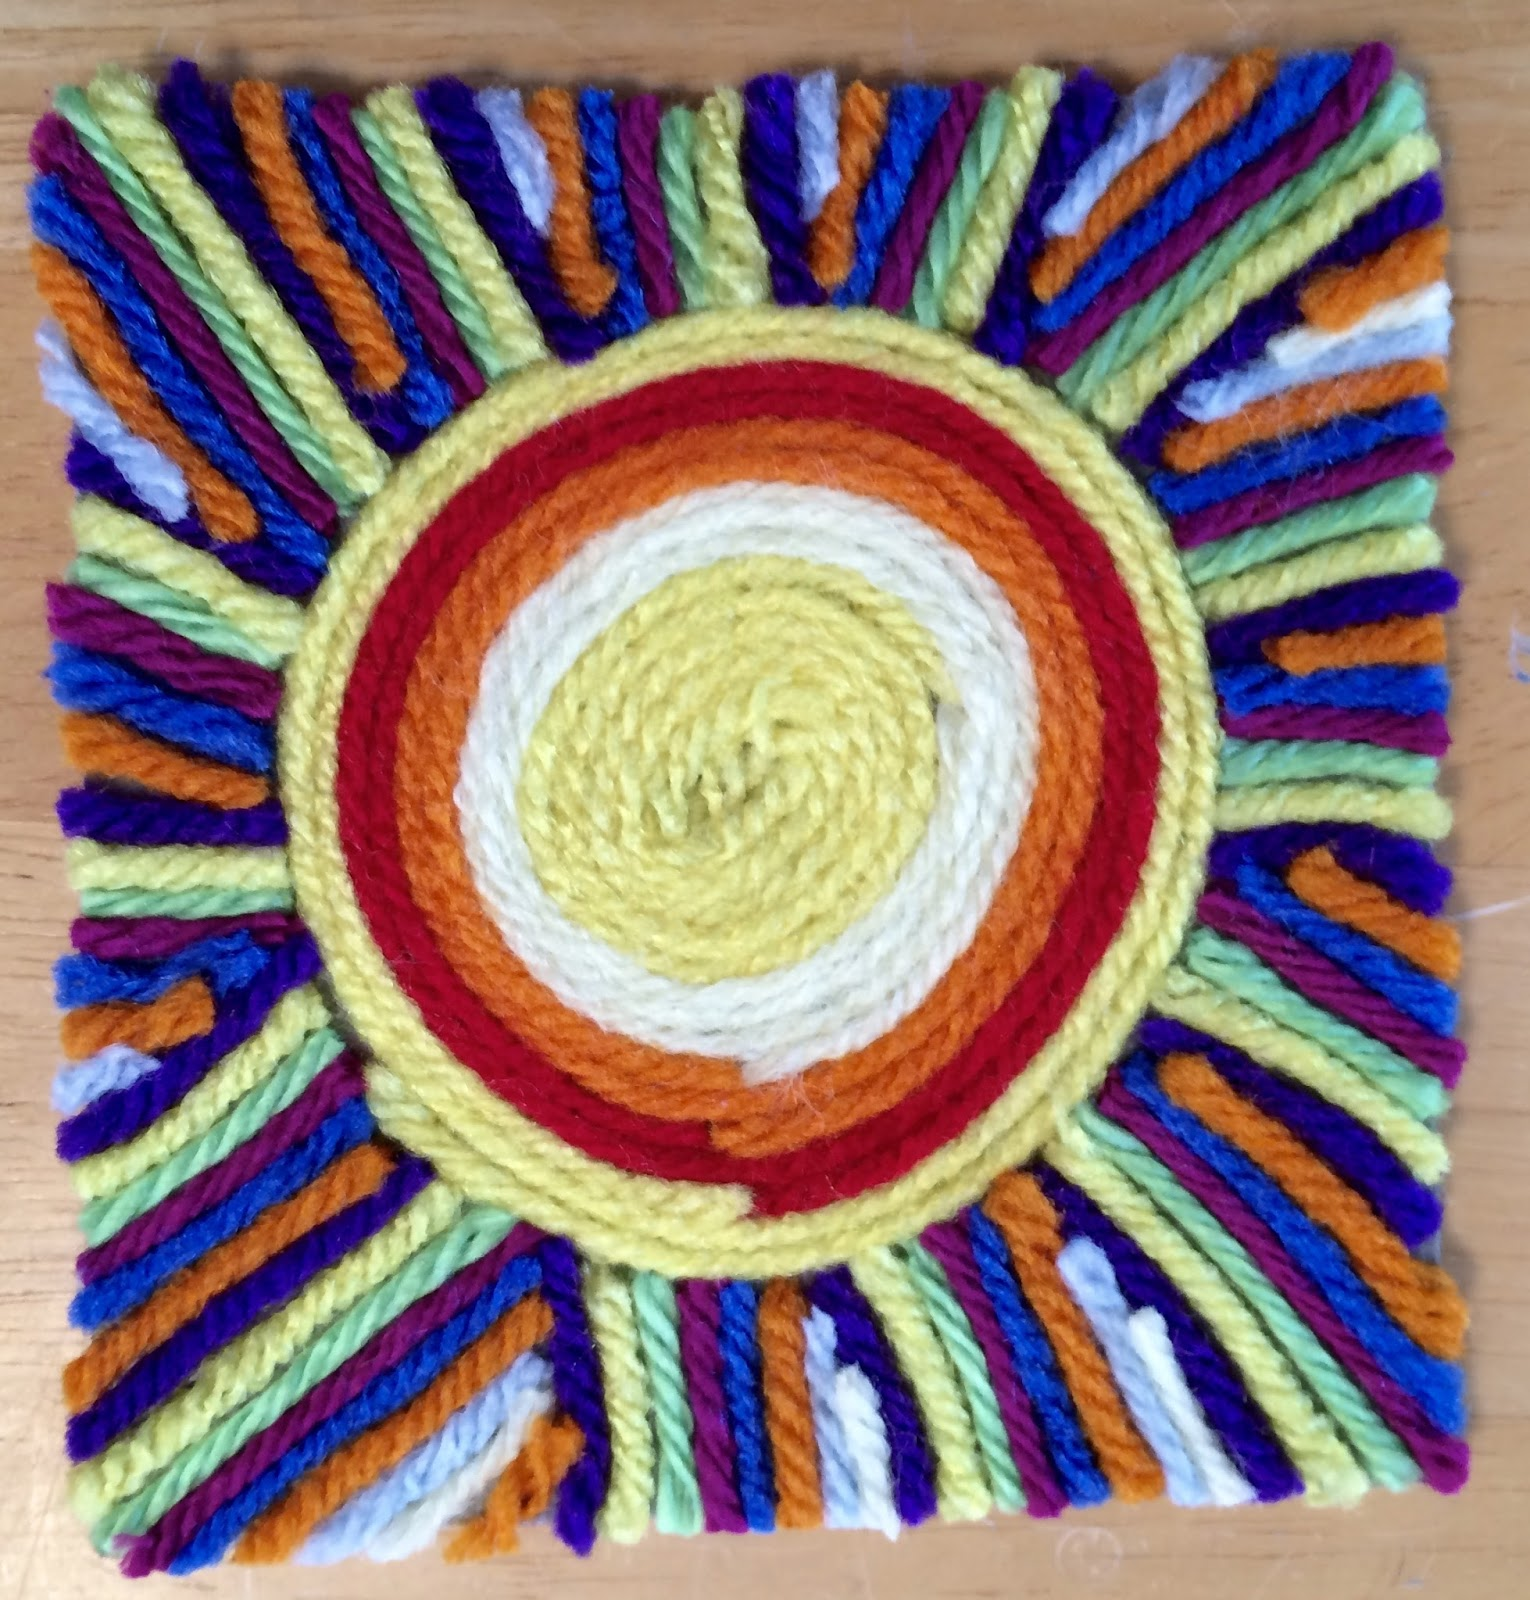 Design Yarn Art kathys angelnik designs art project ideas mexican sun huichol yarn painting lesson